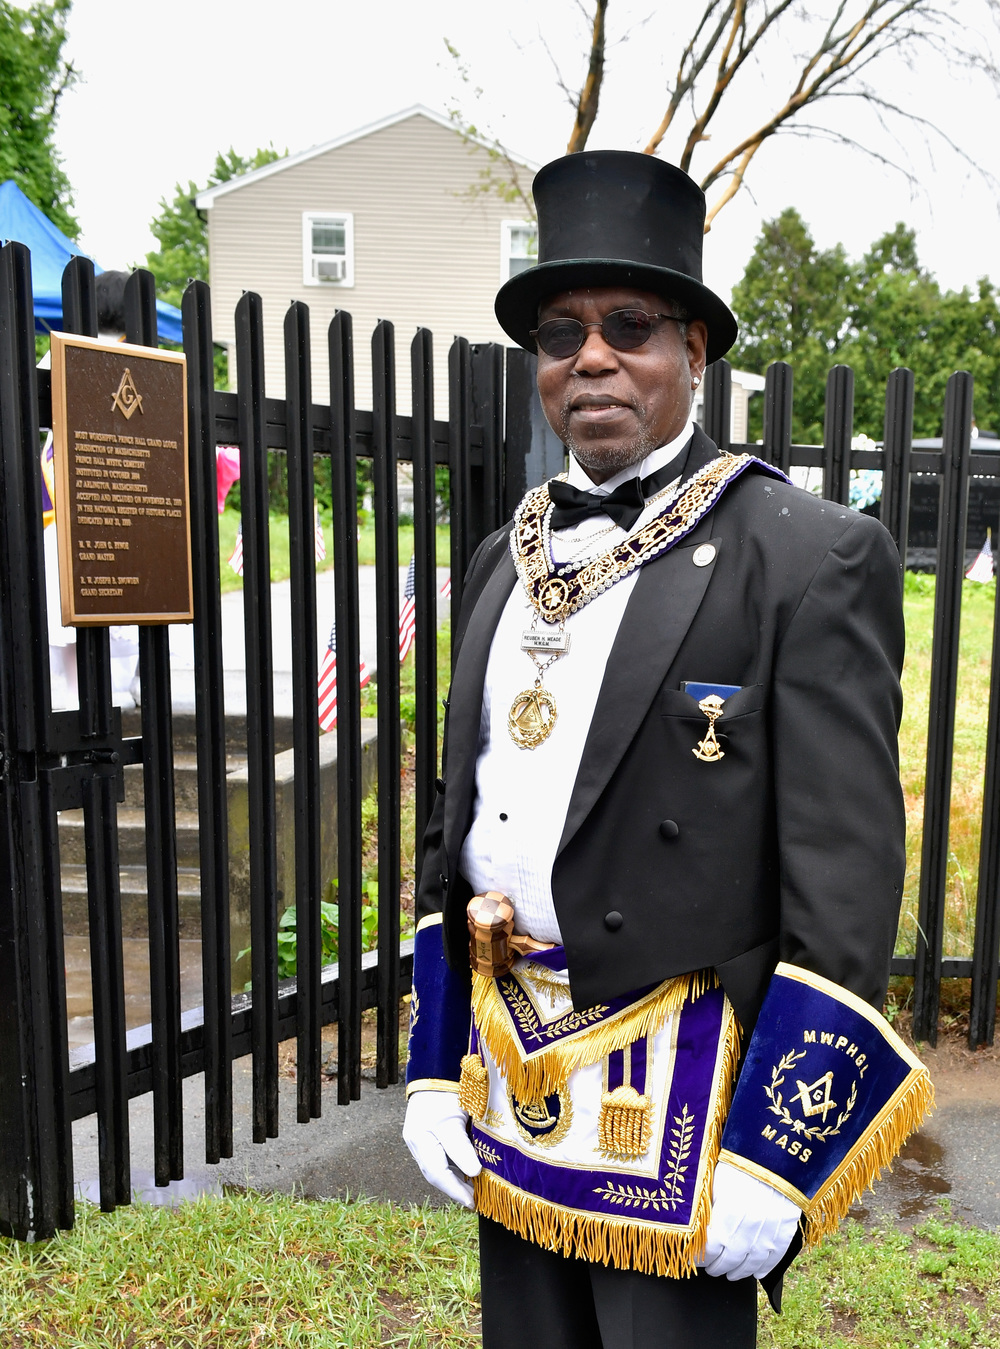 Freemason's Prince Hall Lodge Marks Memorial Day